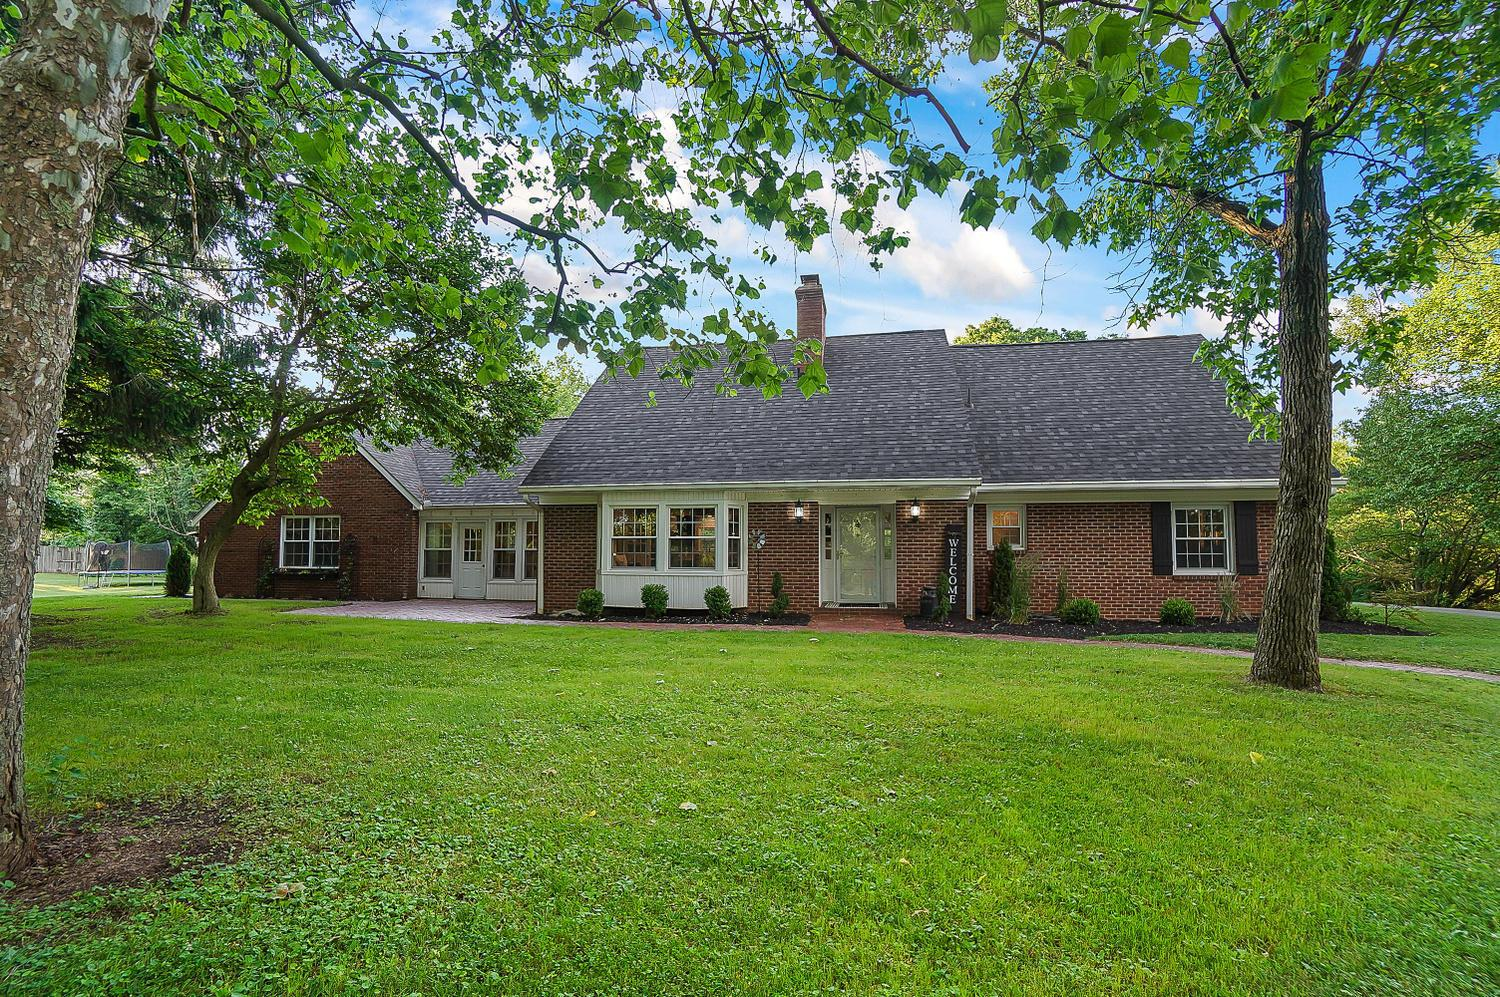 Photo of 1934 Zuber Road, Grove City, OH 43123